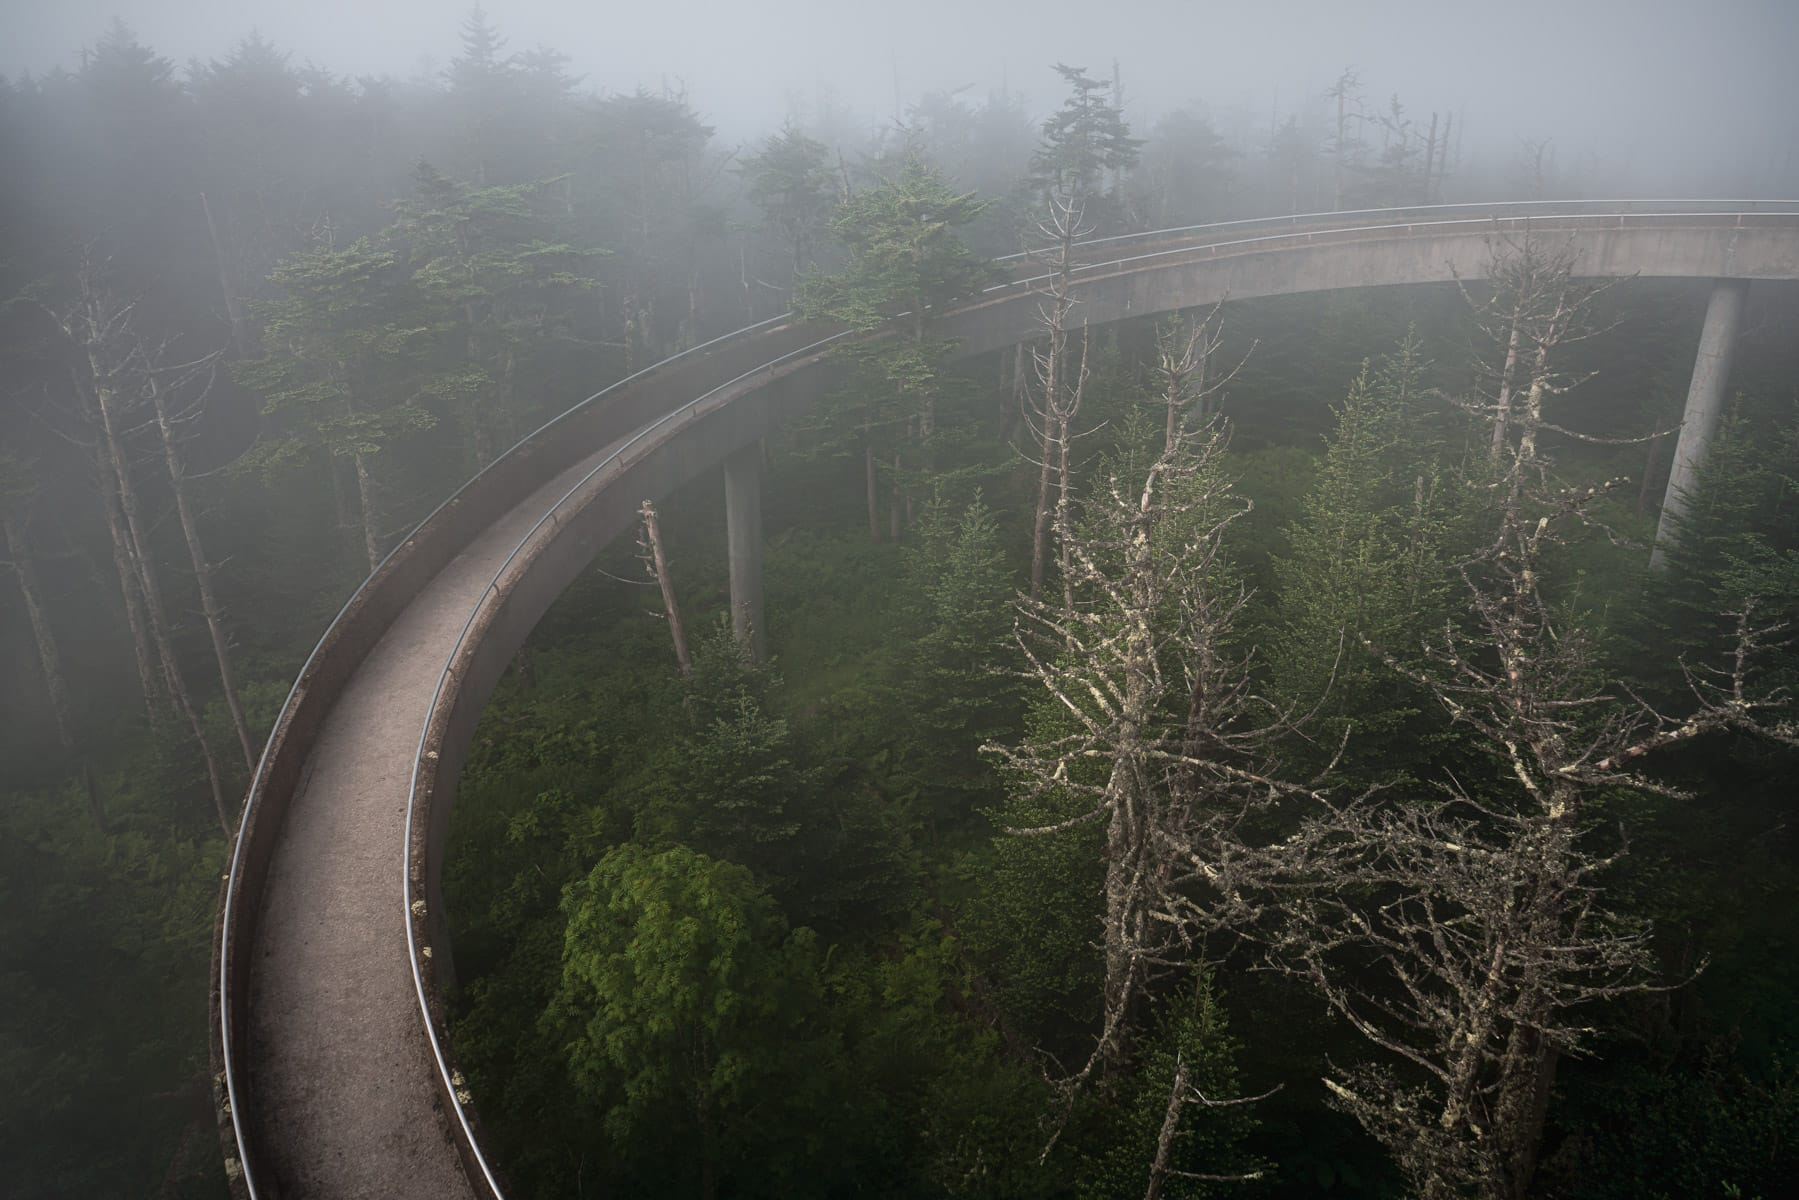 The ramp leading to the top of the observation tower at the Great Smoky Mountains National Park's Clingman's Dome curves through the morning fog.